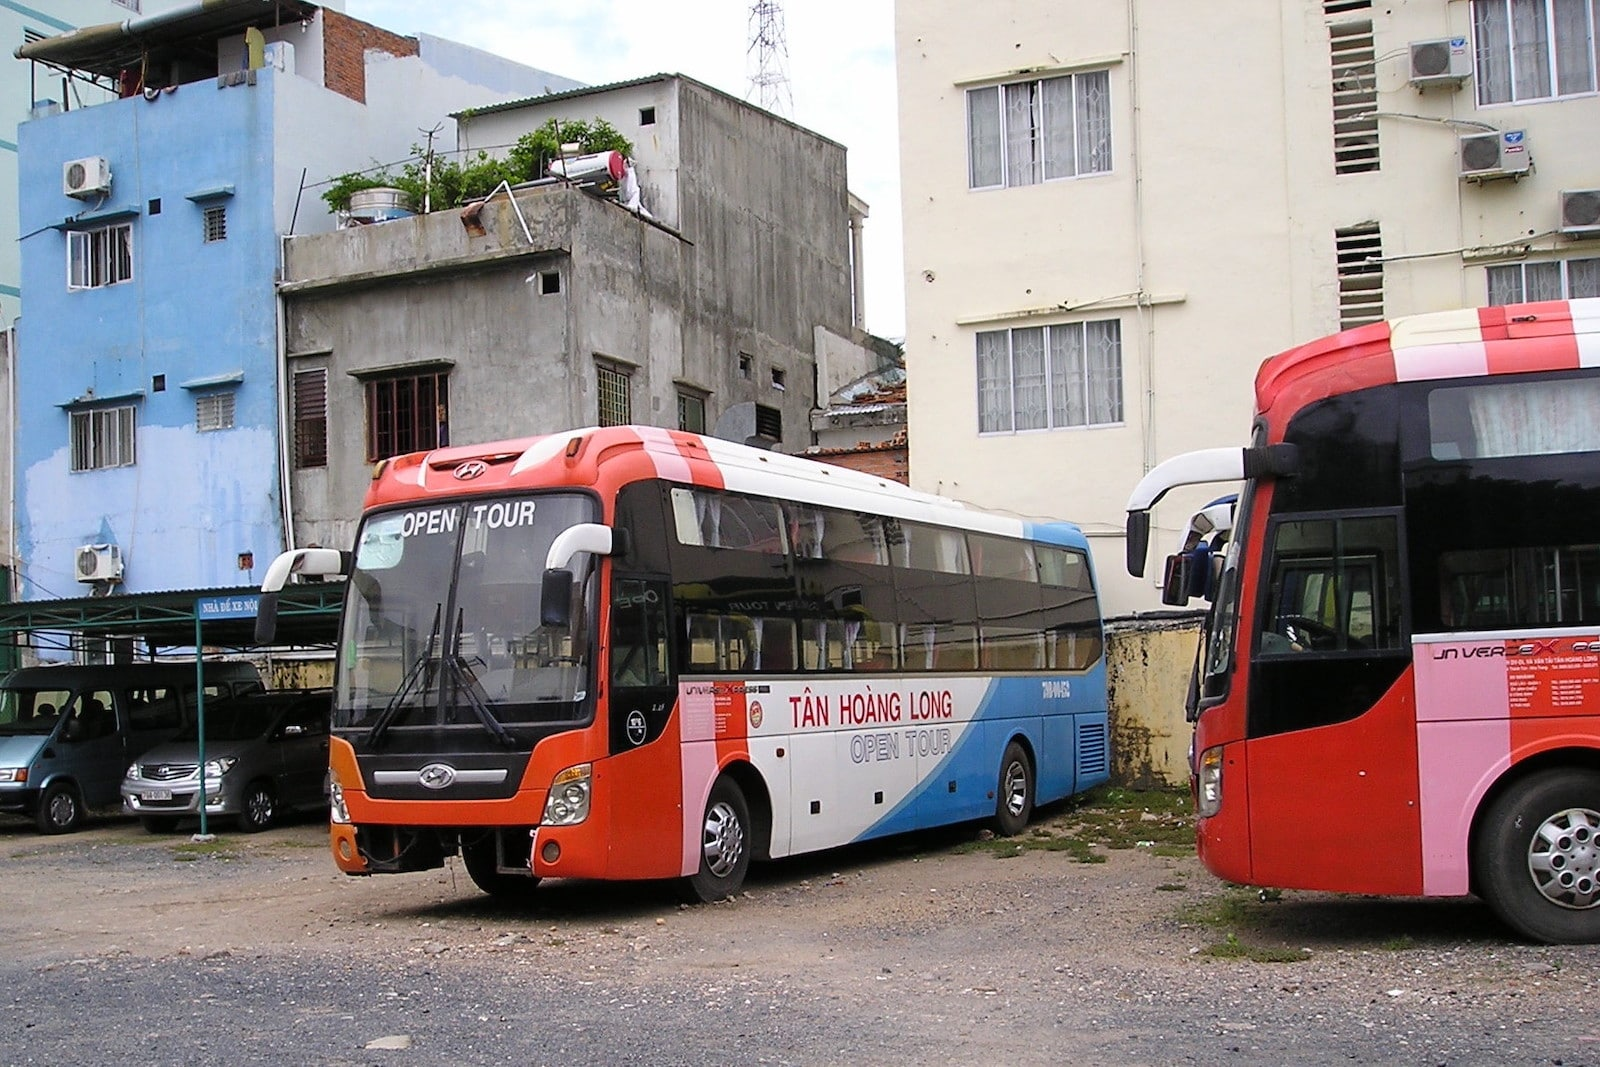 Images of a bus in Nha Trang, Vietnam